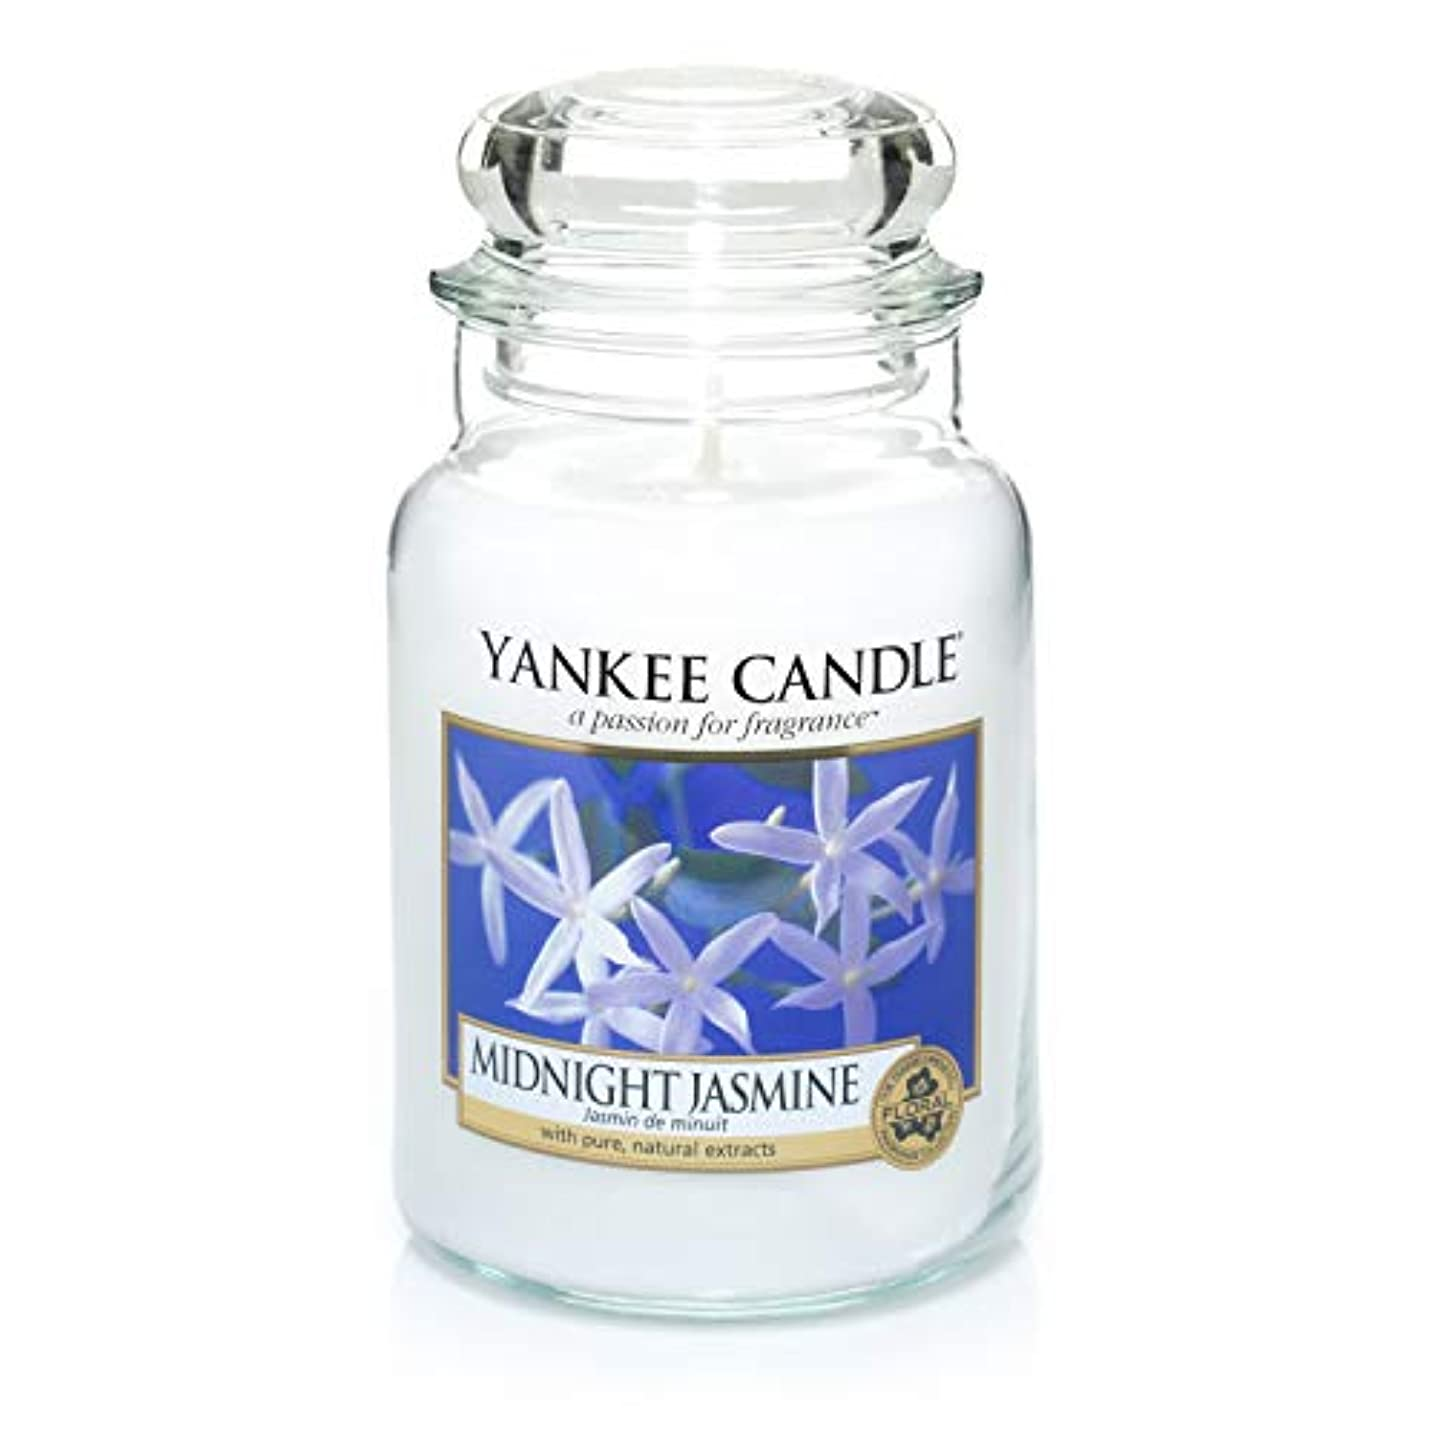 Yankee Candle Large Jar Candle, Midnight Jasmine by Yankee Candle